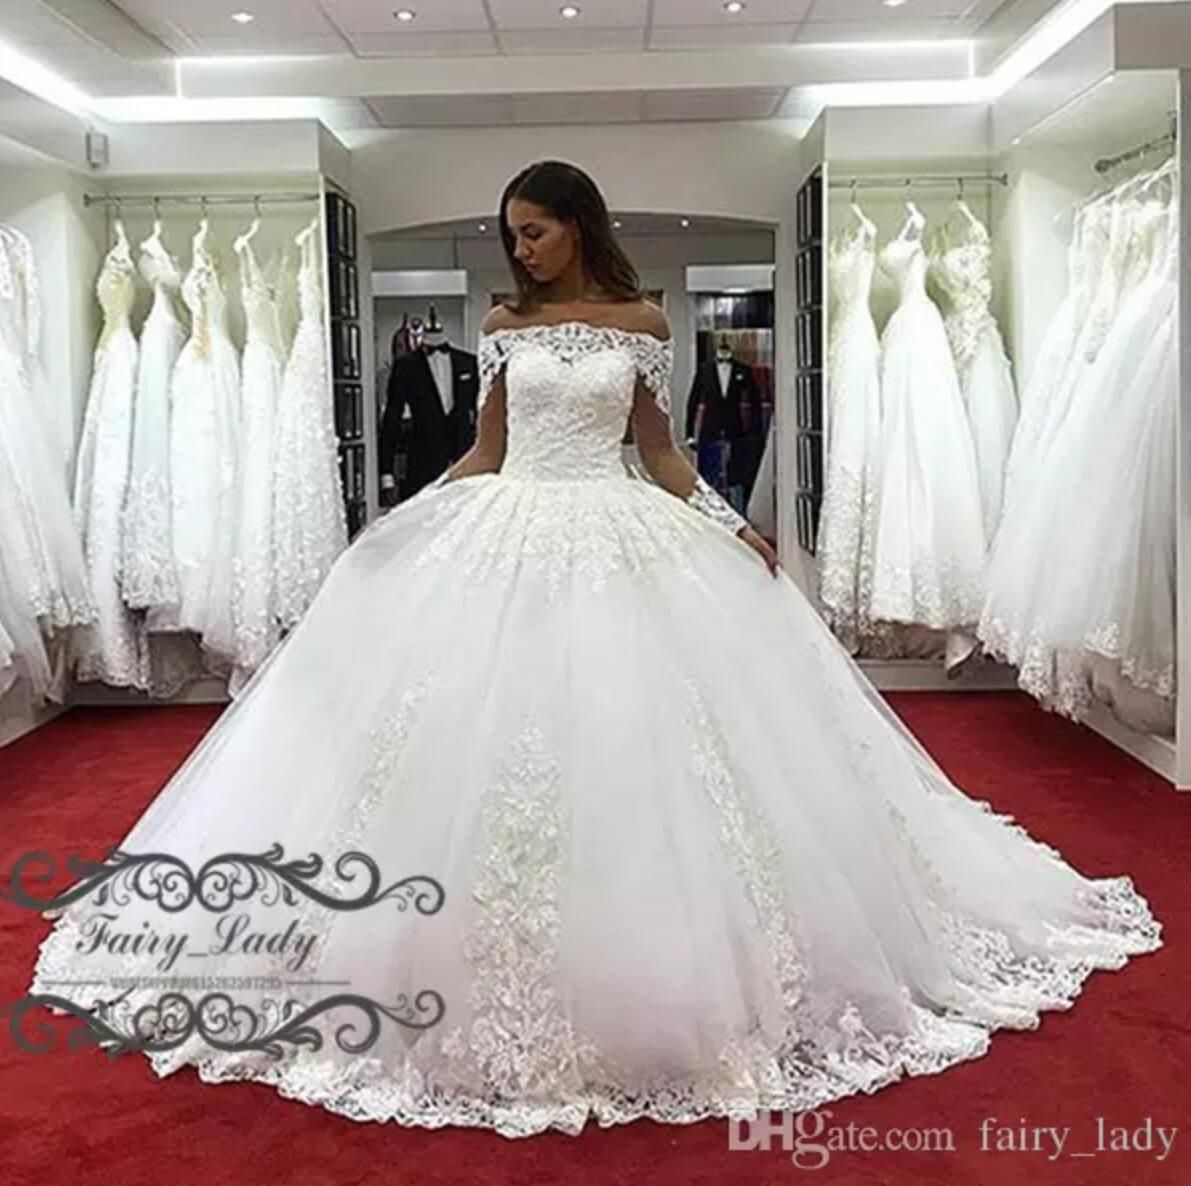 9390d9cc8ffd1 Gorgeous 2018 Off Shoulder Country Bridal Wedding Dresses With Long Sleeves  Sheer Lace Appliques White Puffy Ball Gown For Women Court Train